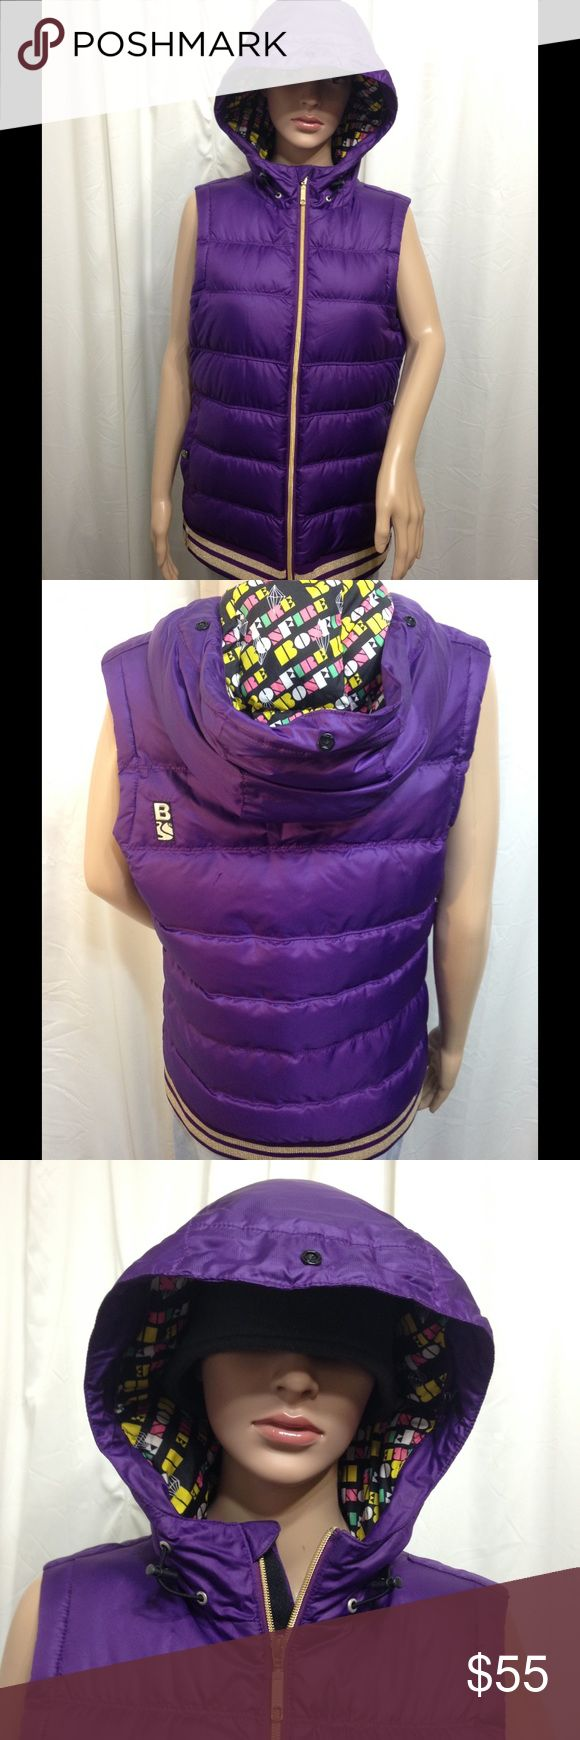 BONFIRE Snowboarding Co. hooded down winter vest L Women's L . Clean . No issues .  Jew HD pics for details . Bonfire Snowboarding Co. Jackets & Coats Vests